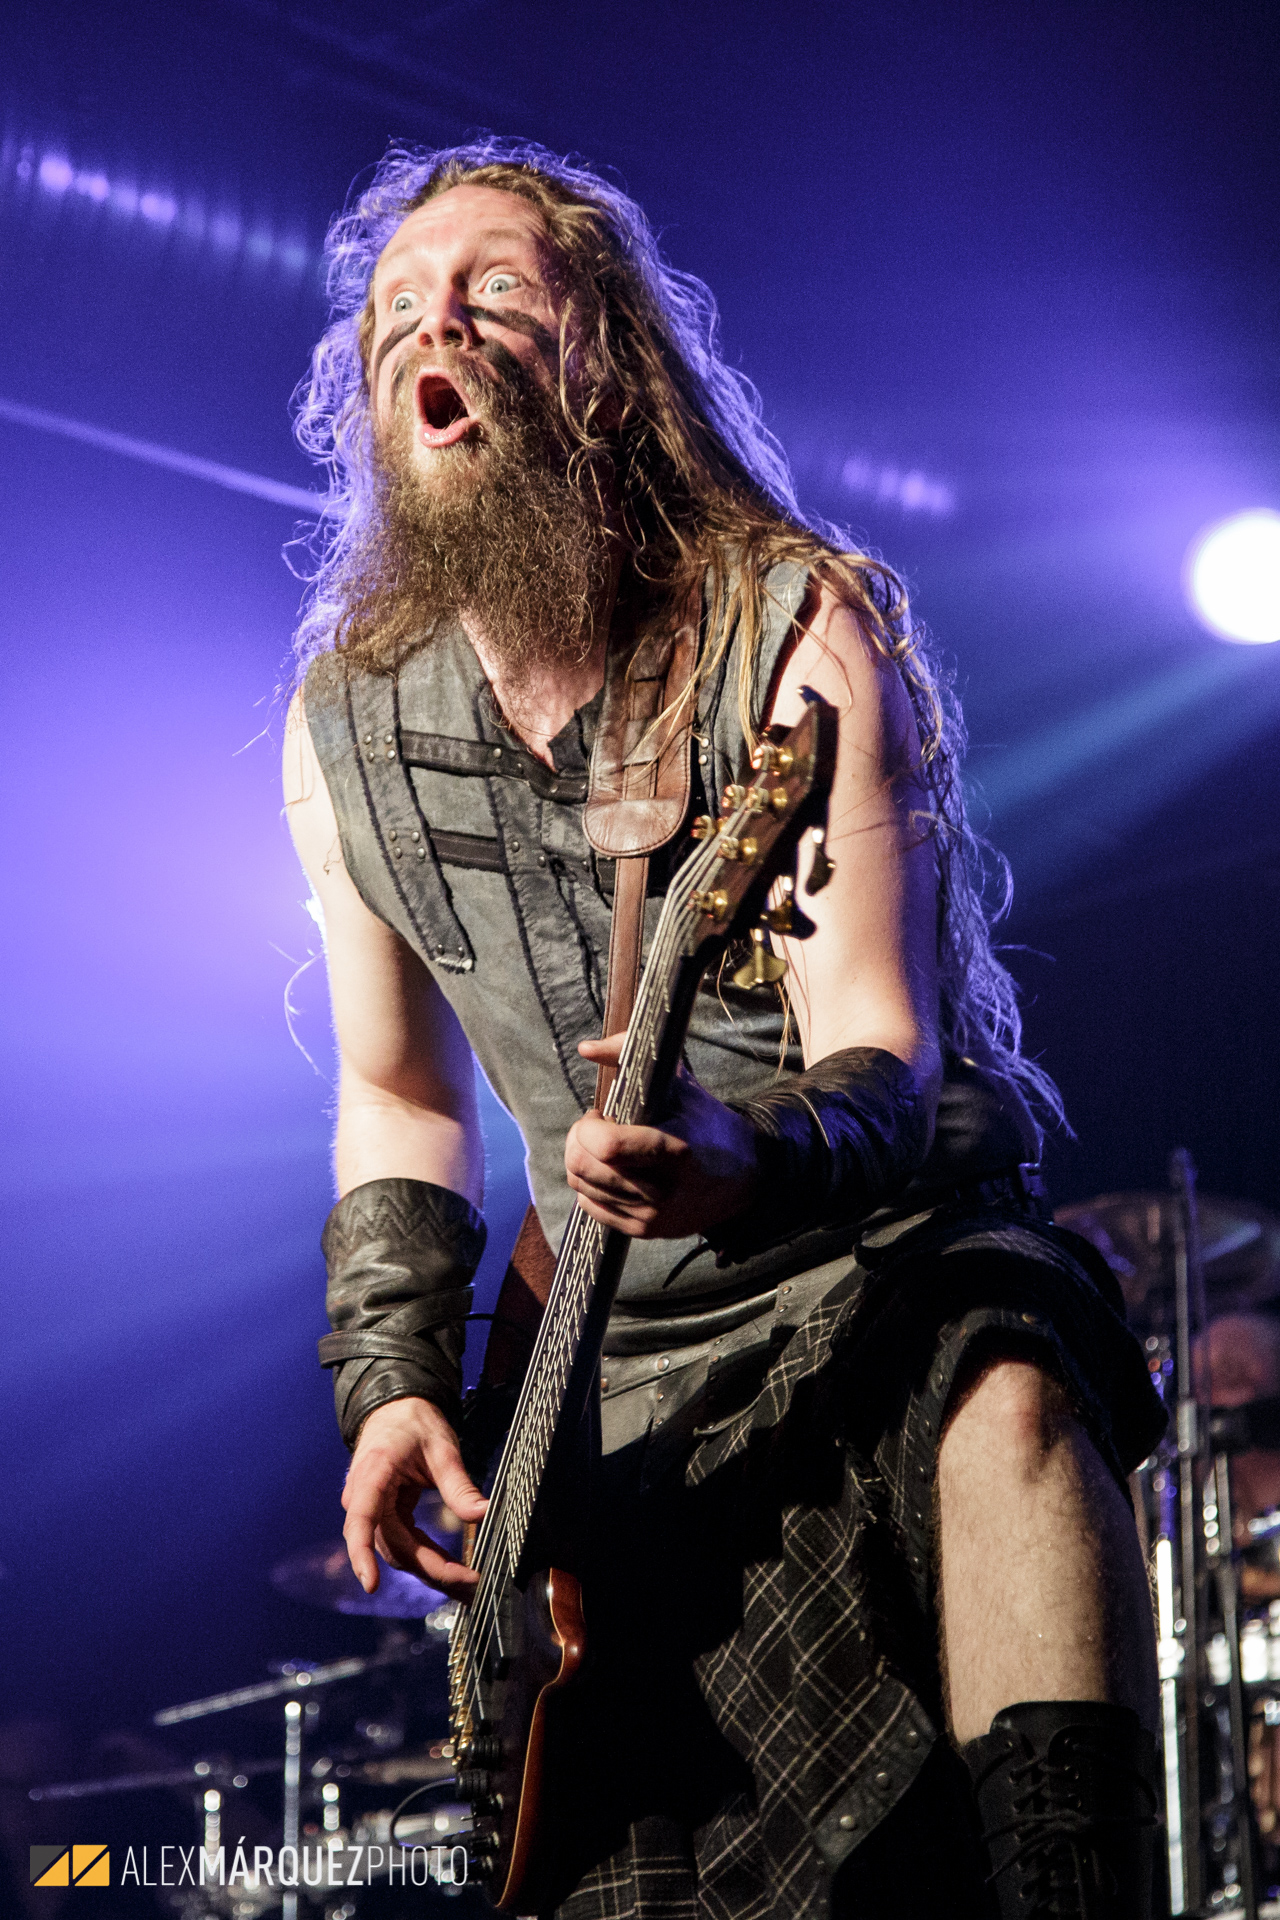 Ensiferum - Alex Márquez Photo